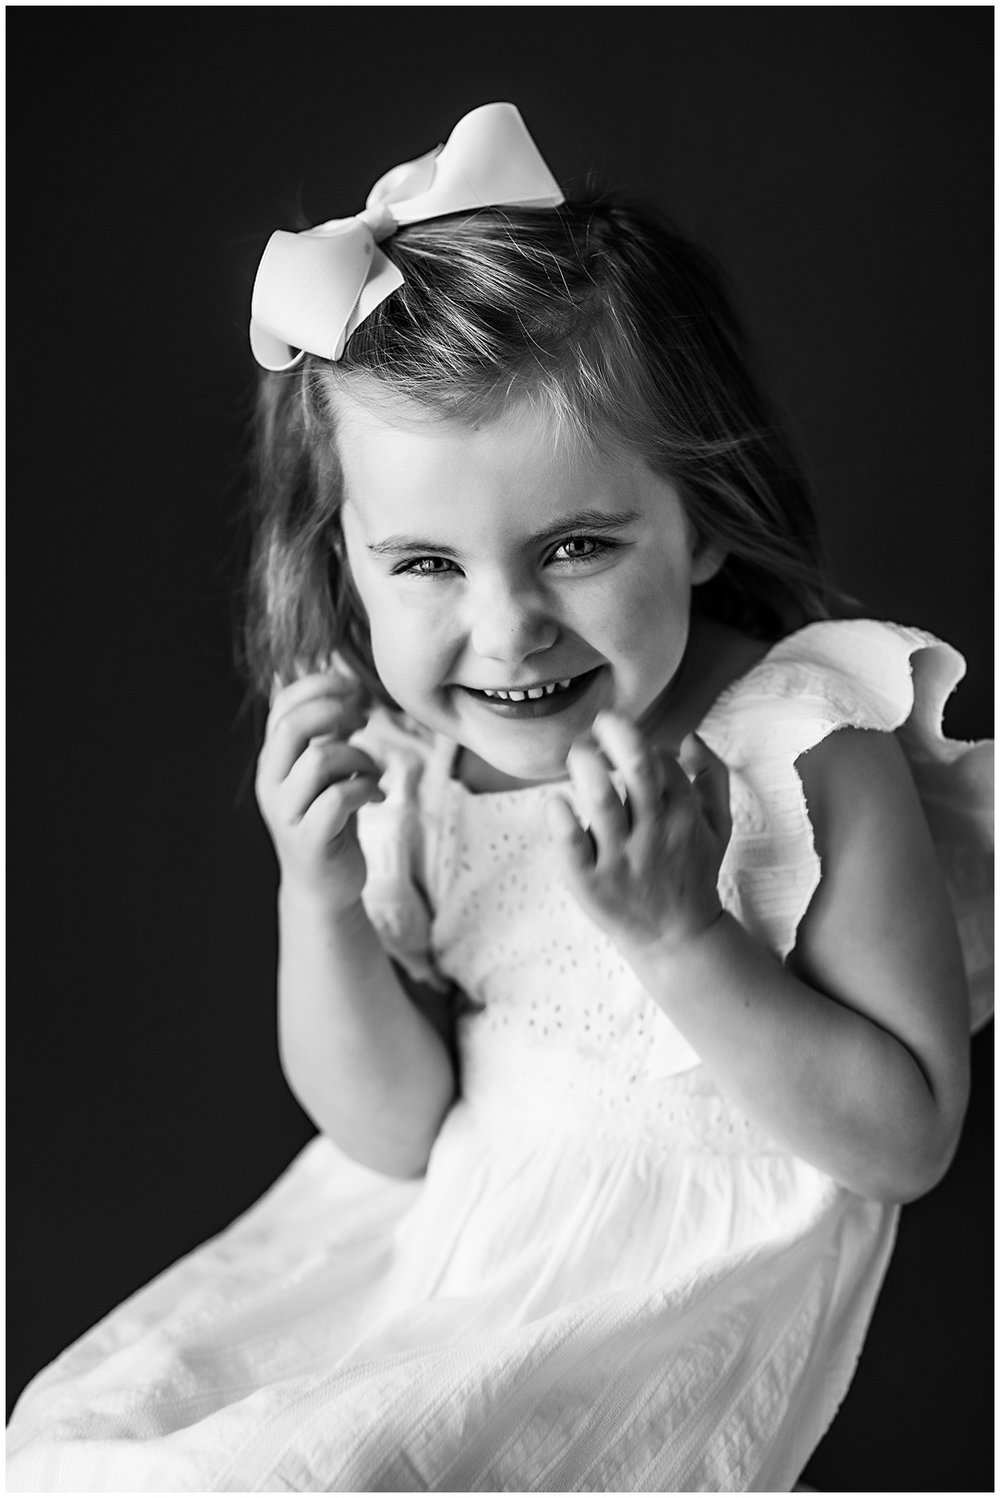 Tessa_marie_photography_atlanta_childrens_fine_art_black_and_white_photography_family_photographer_0014.jpg